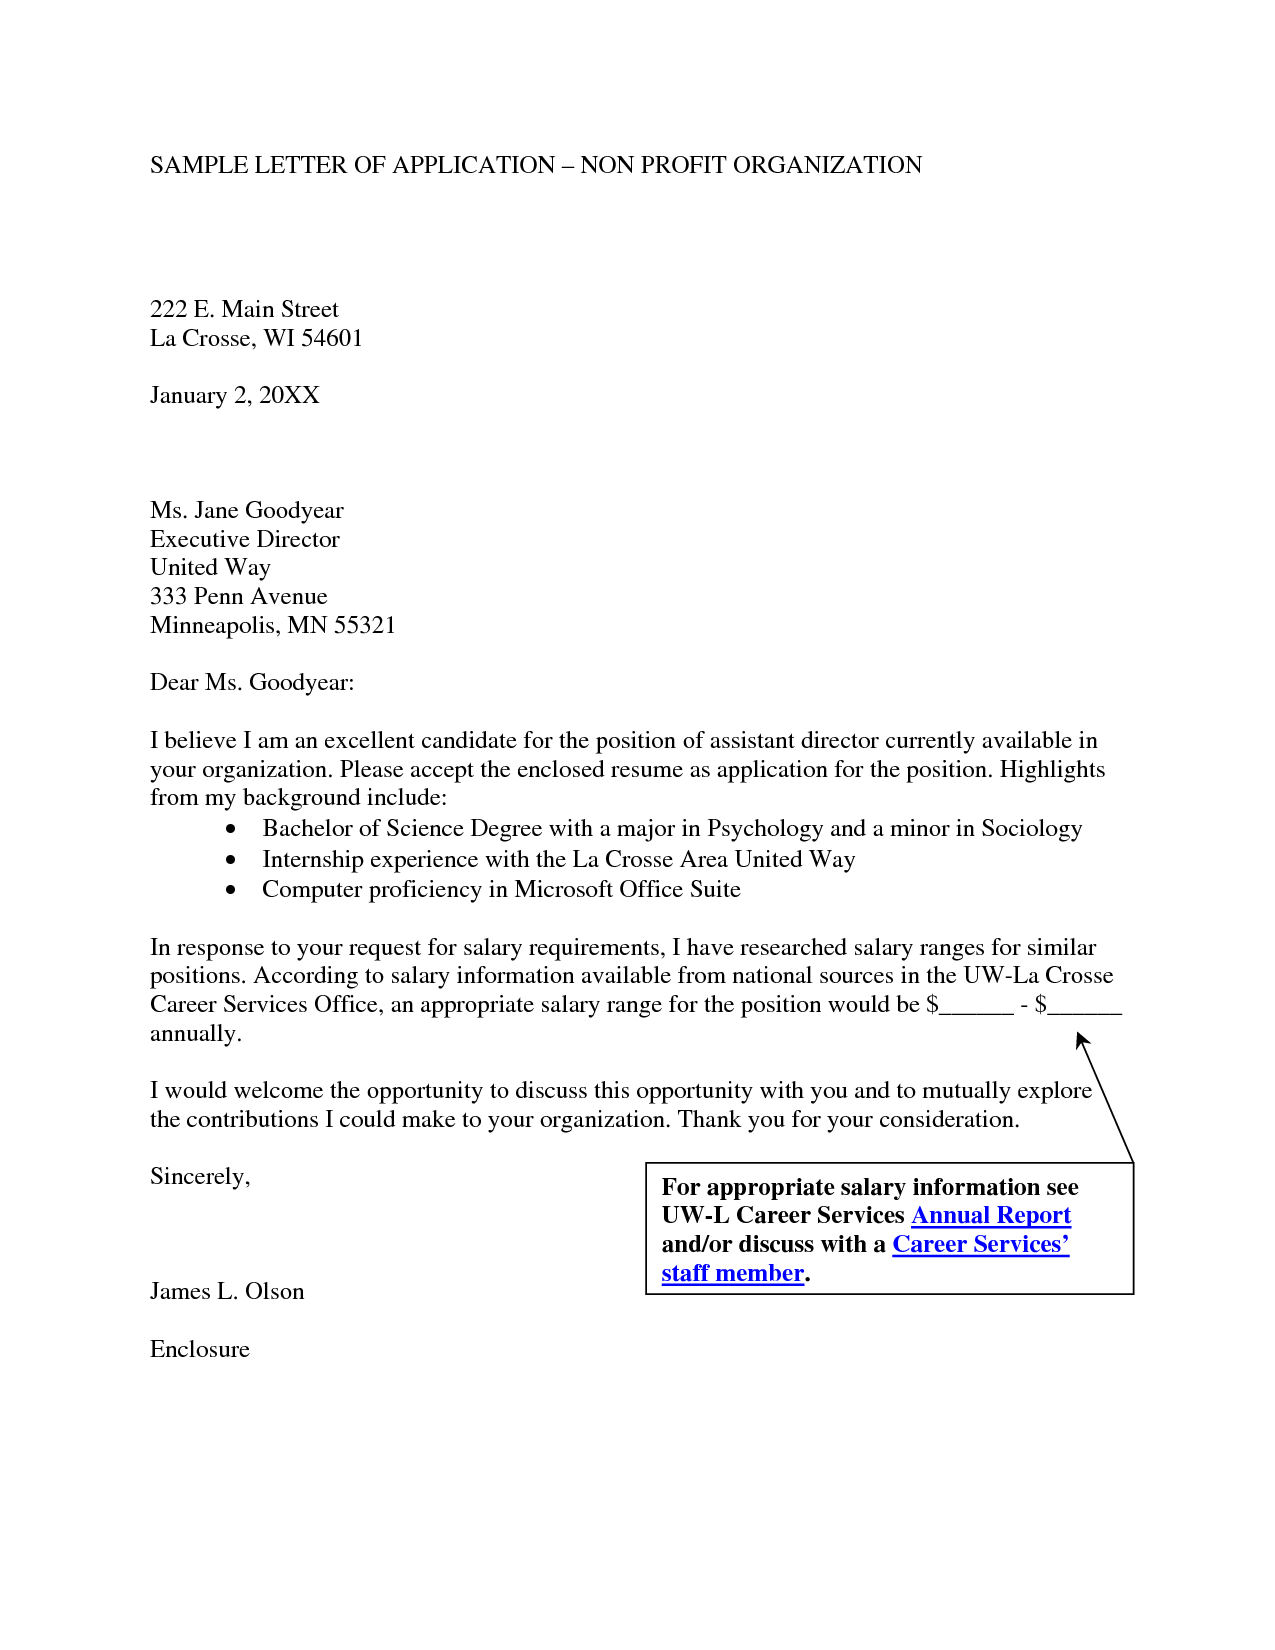 cover letter for non profit board resignation sample member